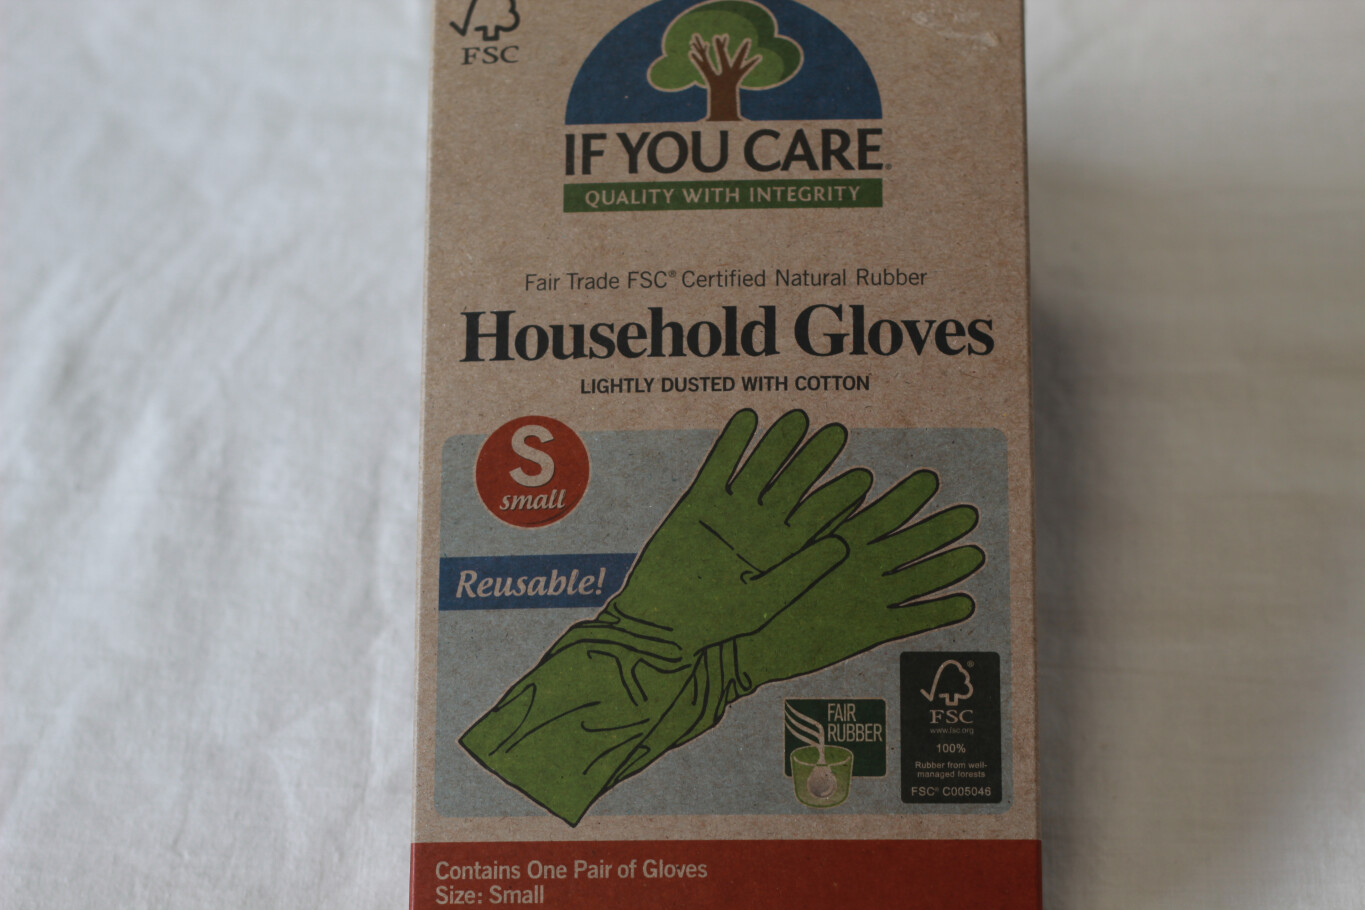 If You Care S Household Gloves